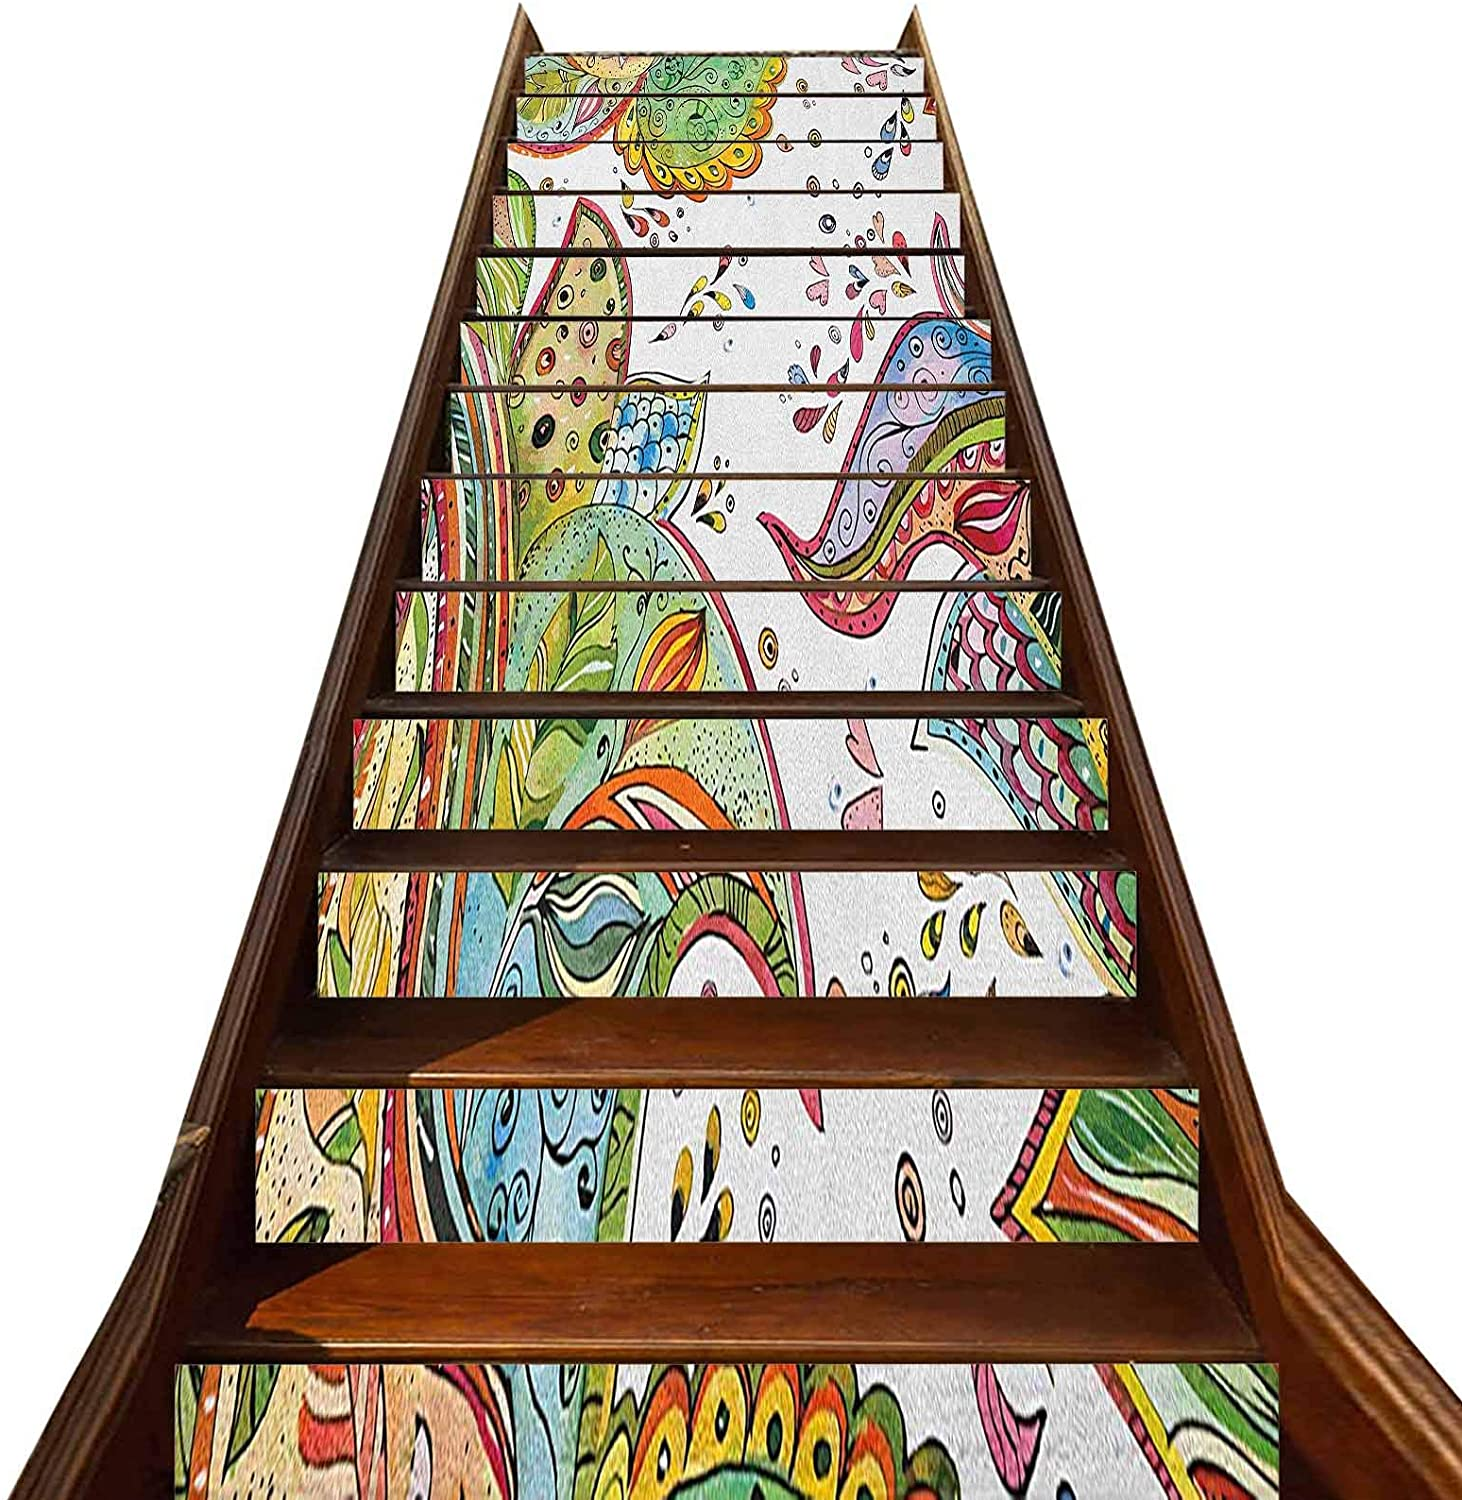 3D Grunge Stair Stickers Decals-13Pcs/Set,Patterns of Leaves Flowers and Heart Shapes in Abstract Garden Theme Art Print Staircase Stickers Stairway Decal Wallpaper,for Stair Sticker Home Decor